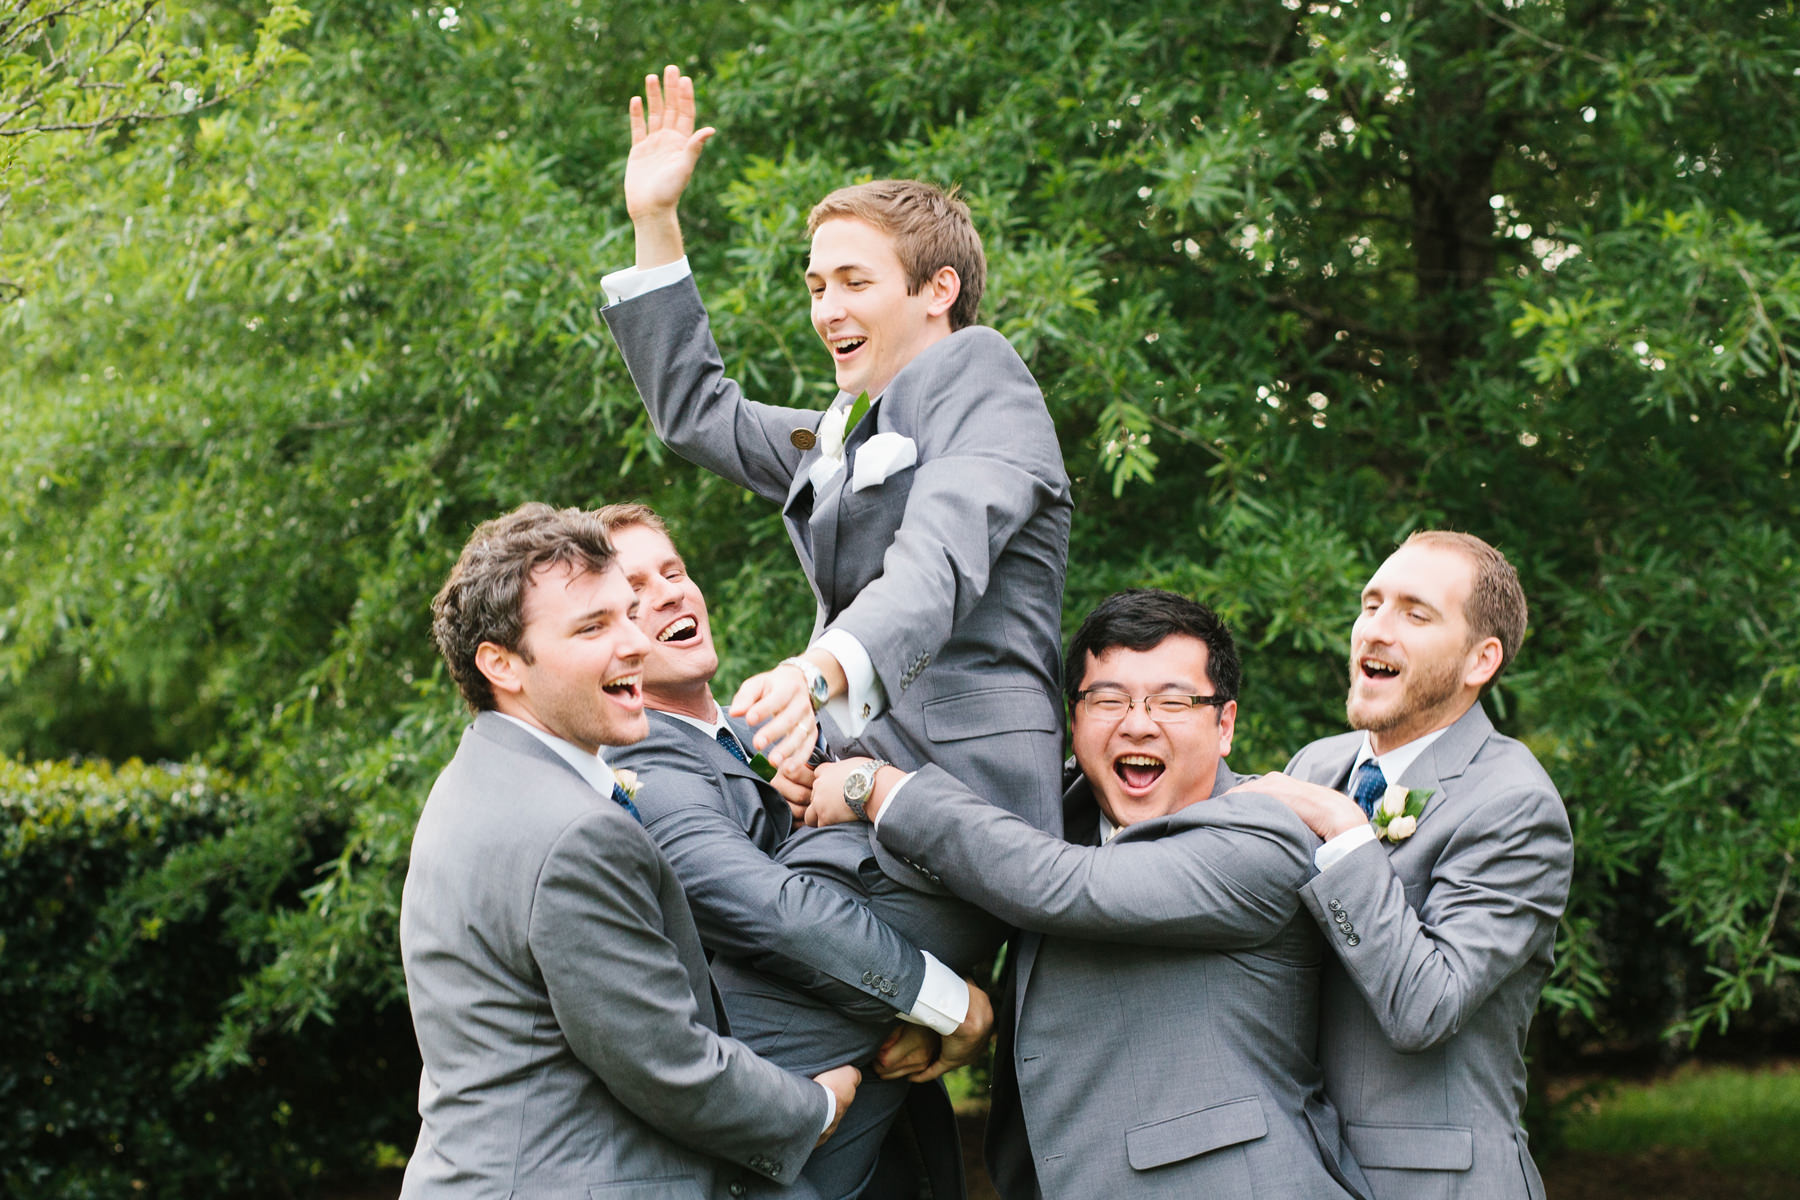 Groom and Groomsmen Fun